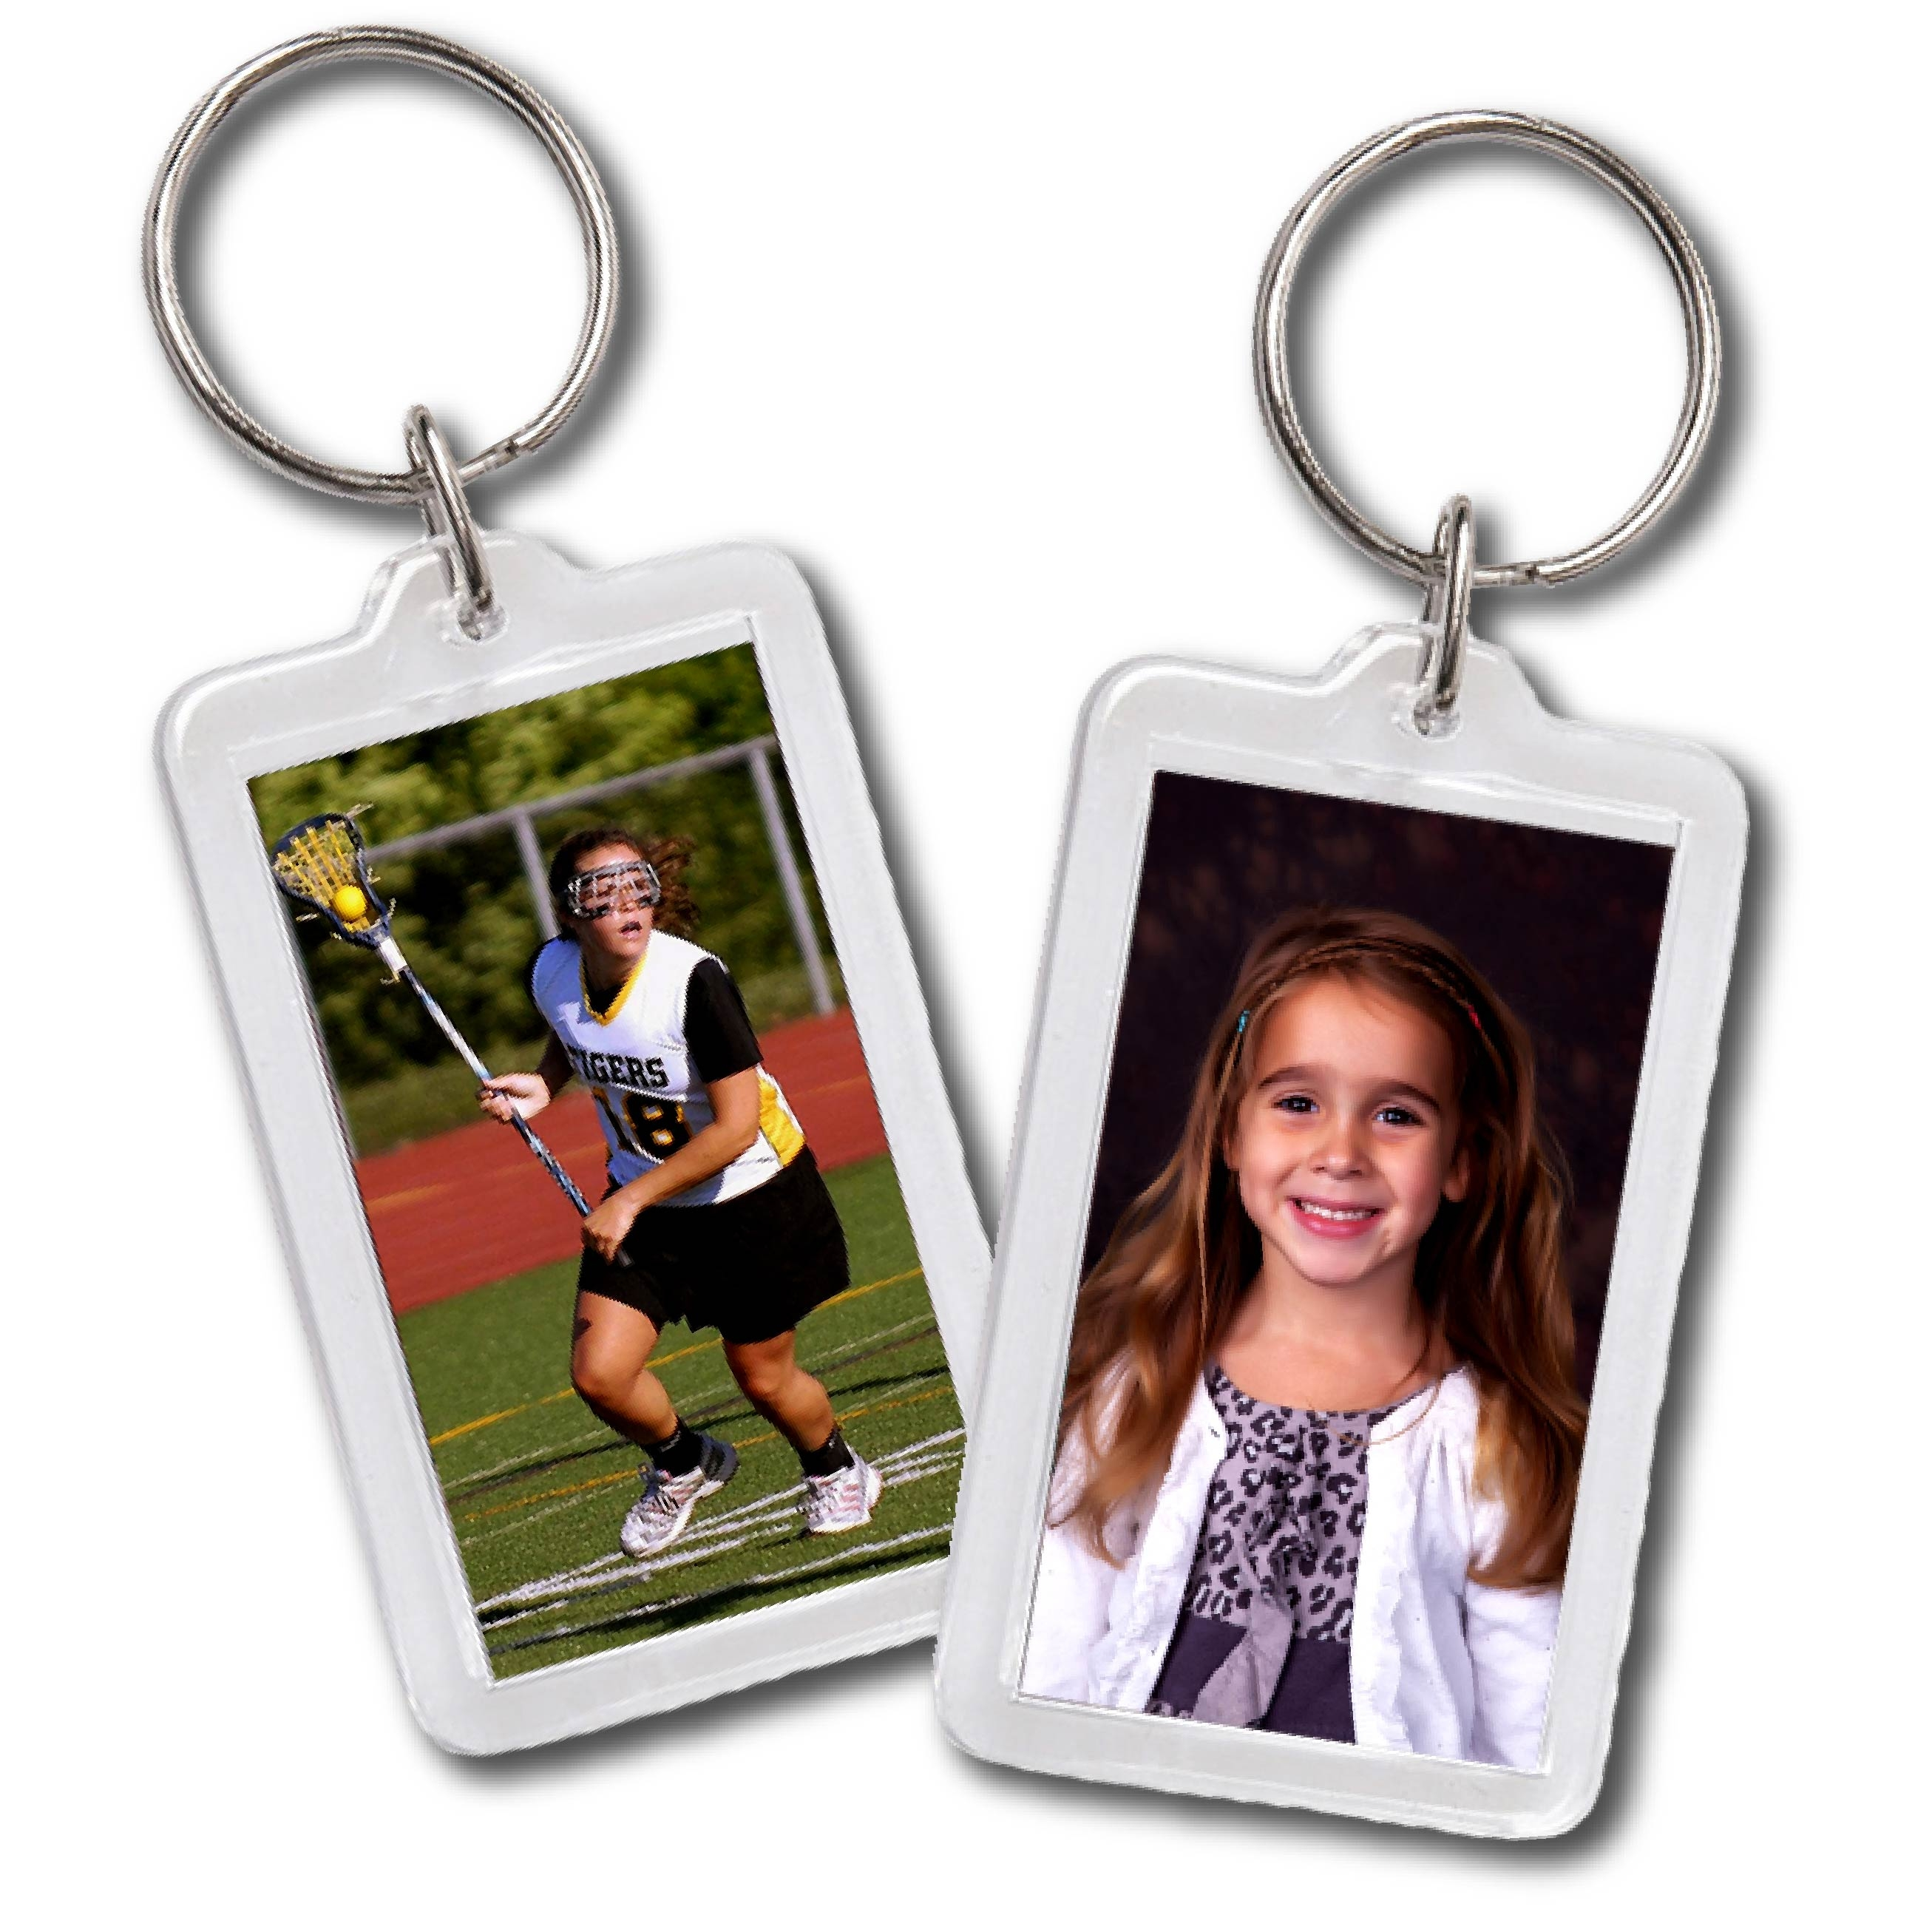 Lacrosse Player & Kindergarten School Photo in Key Chains